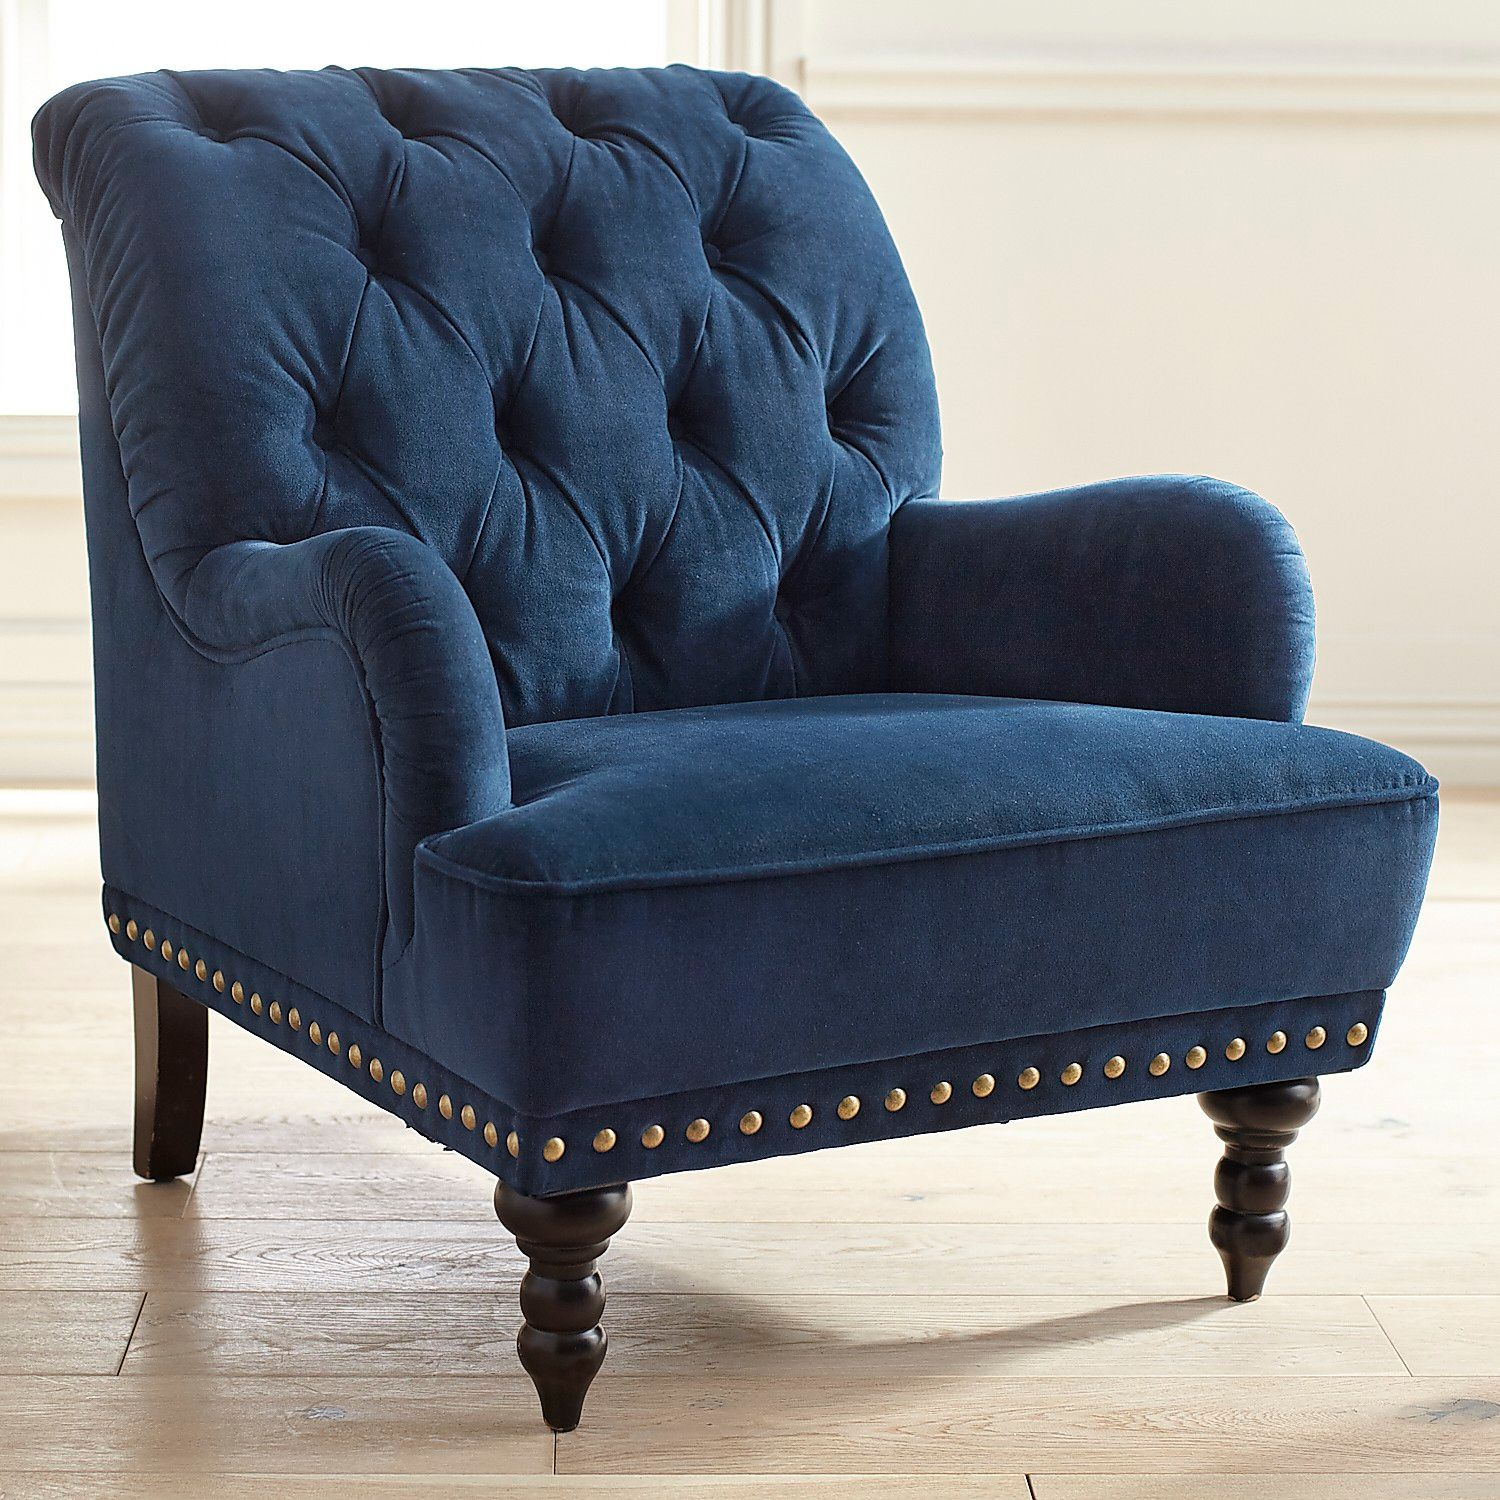 Armchair meaning and its benefits – TopsDecor.com